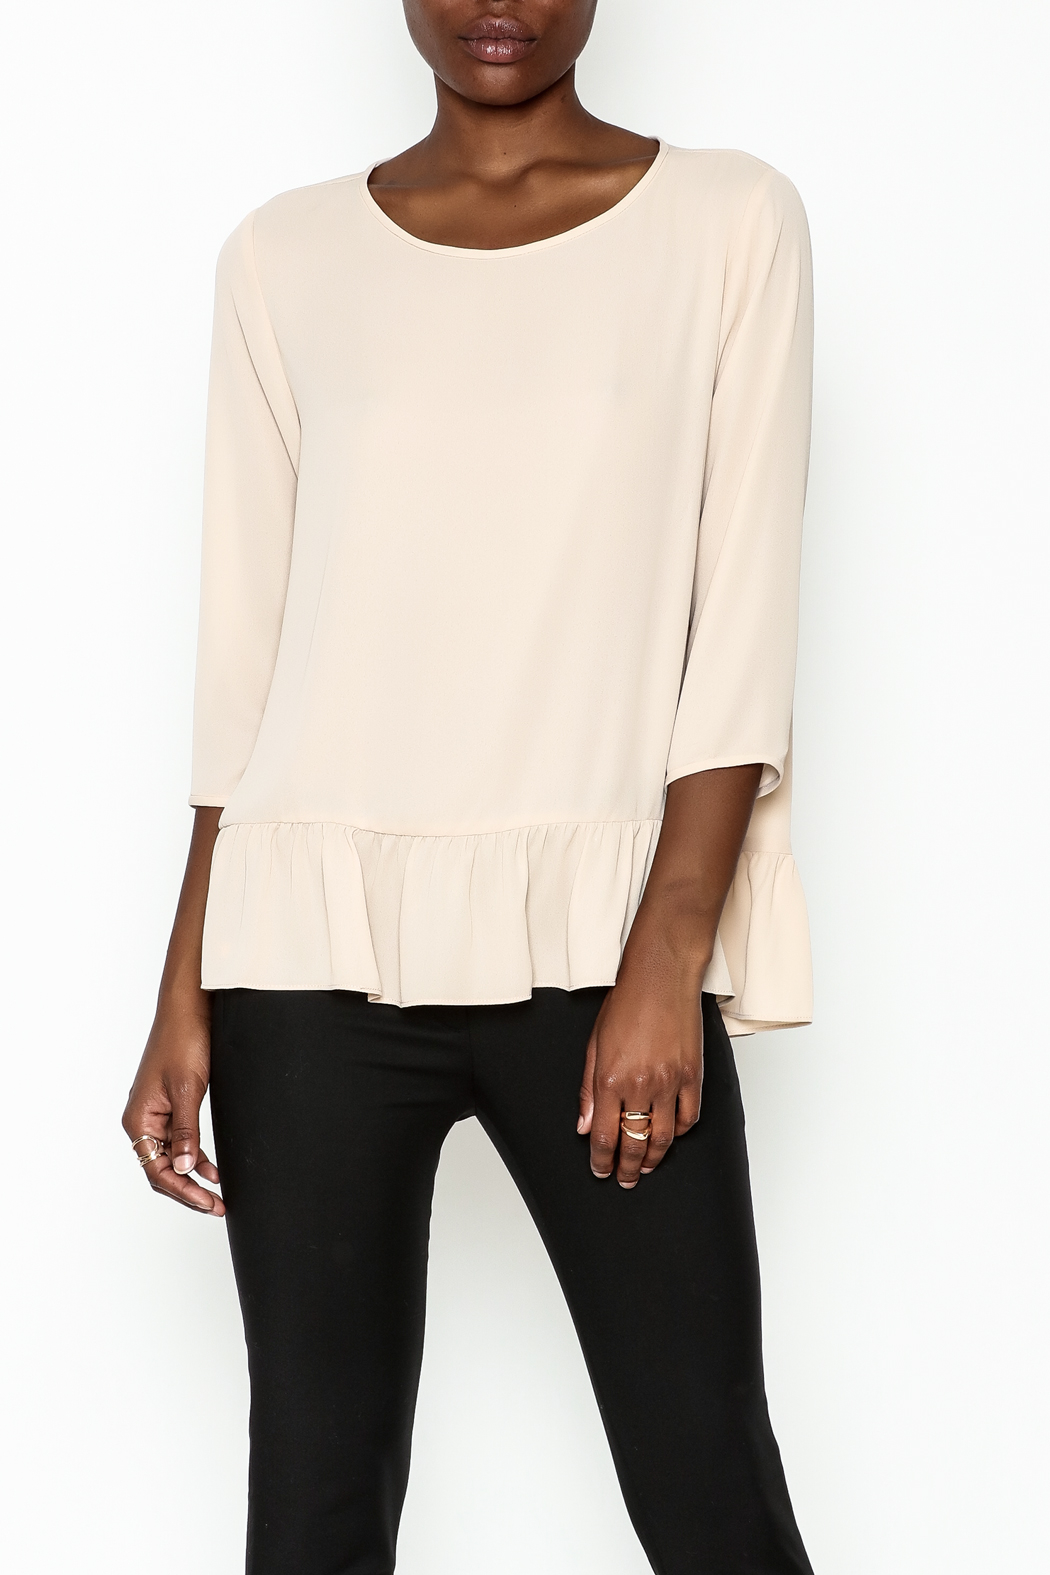 Zoa Ruffle Bottom Top - Front Cropped Image